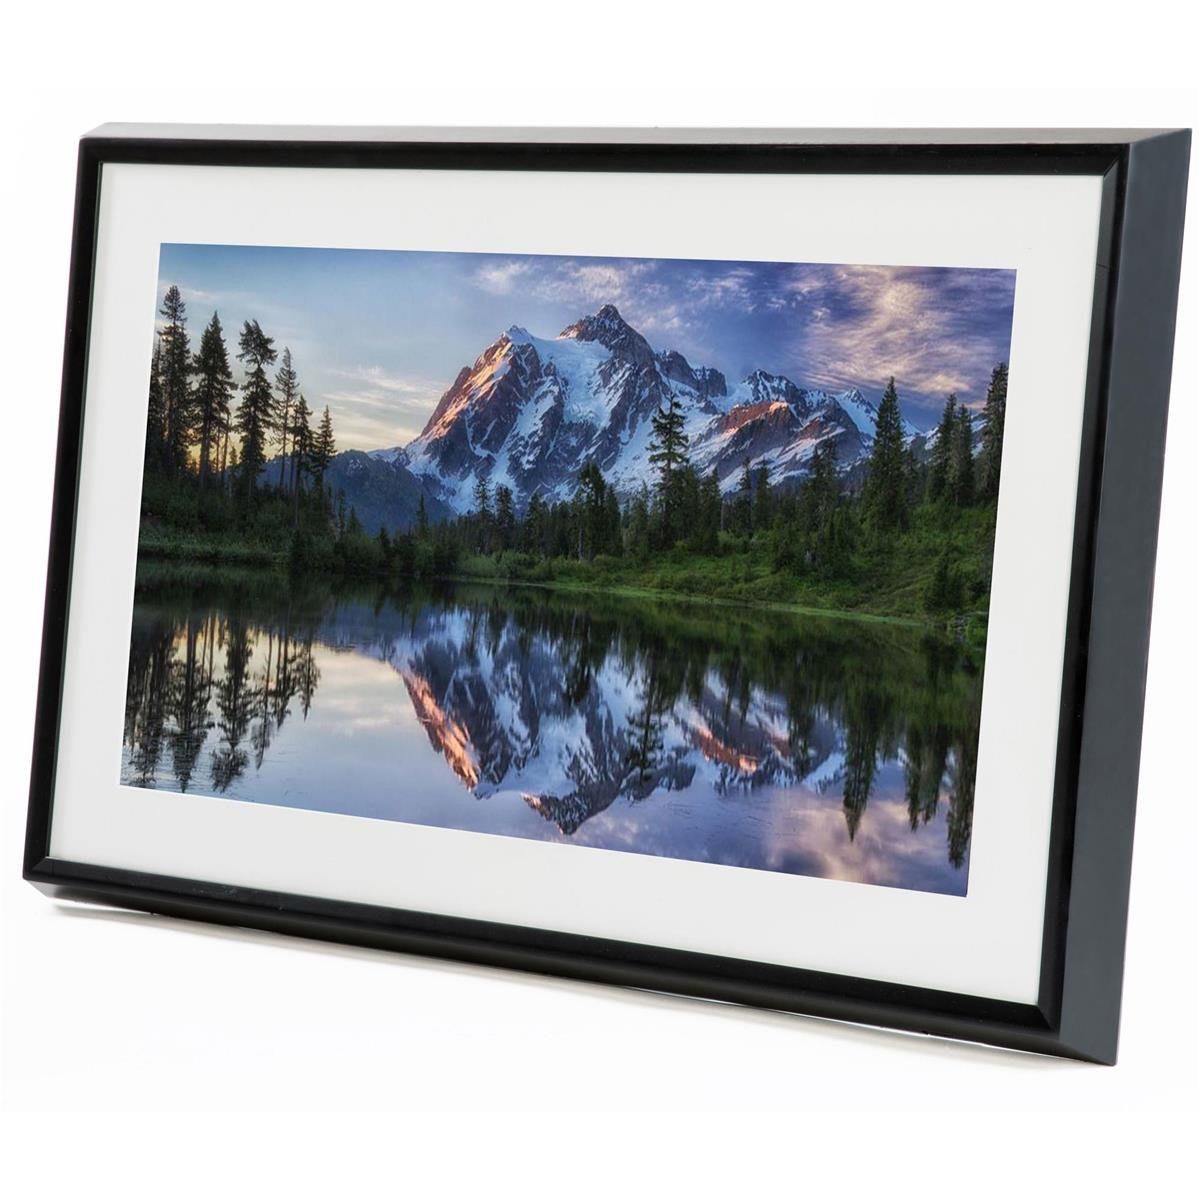 Meural Canvas - Smart Digital Photo Frame - Art Display | Leonora Black | Swivel Wall Mount | 27 inch HD Display with WiFi | Smart Home Compatible | Includes One-Year Membership to Art Library by Meural (Image #2)